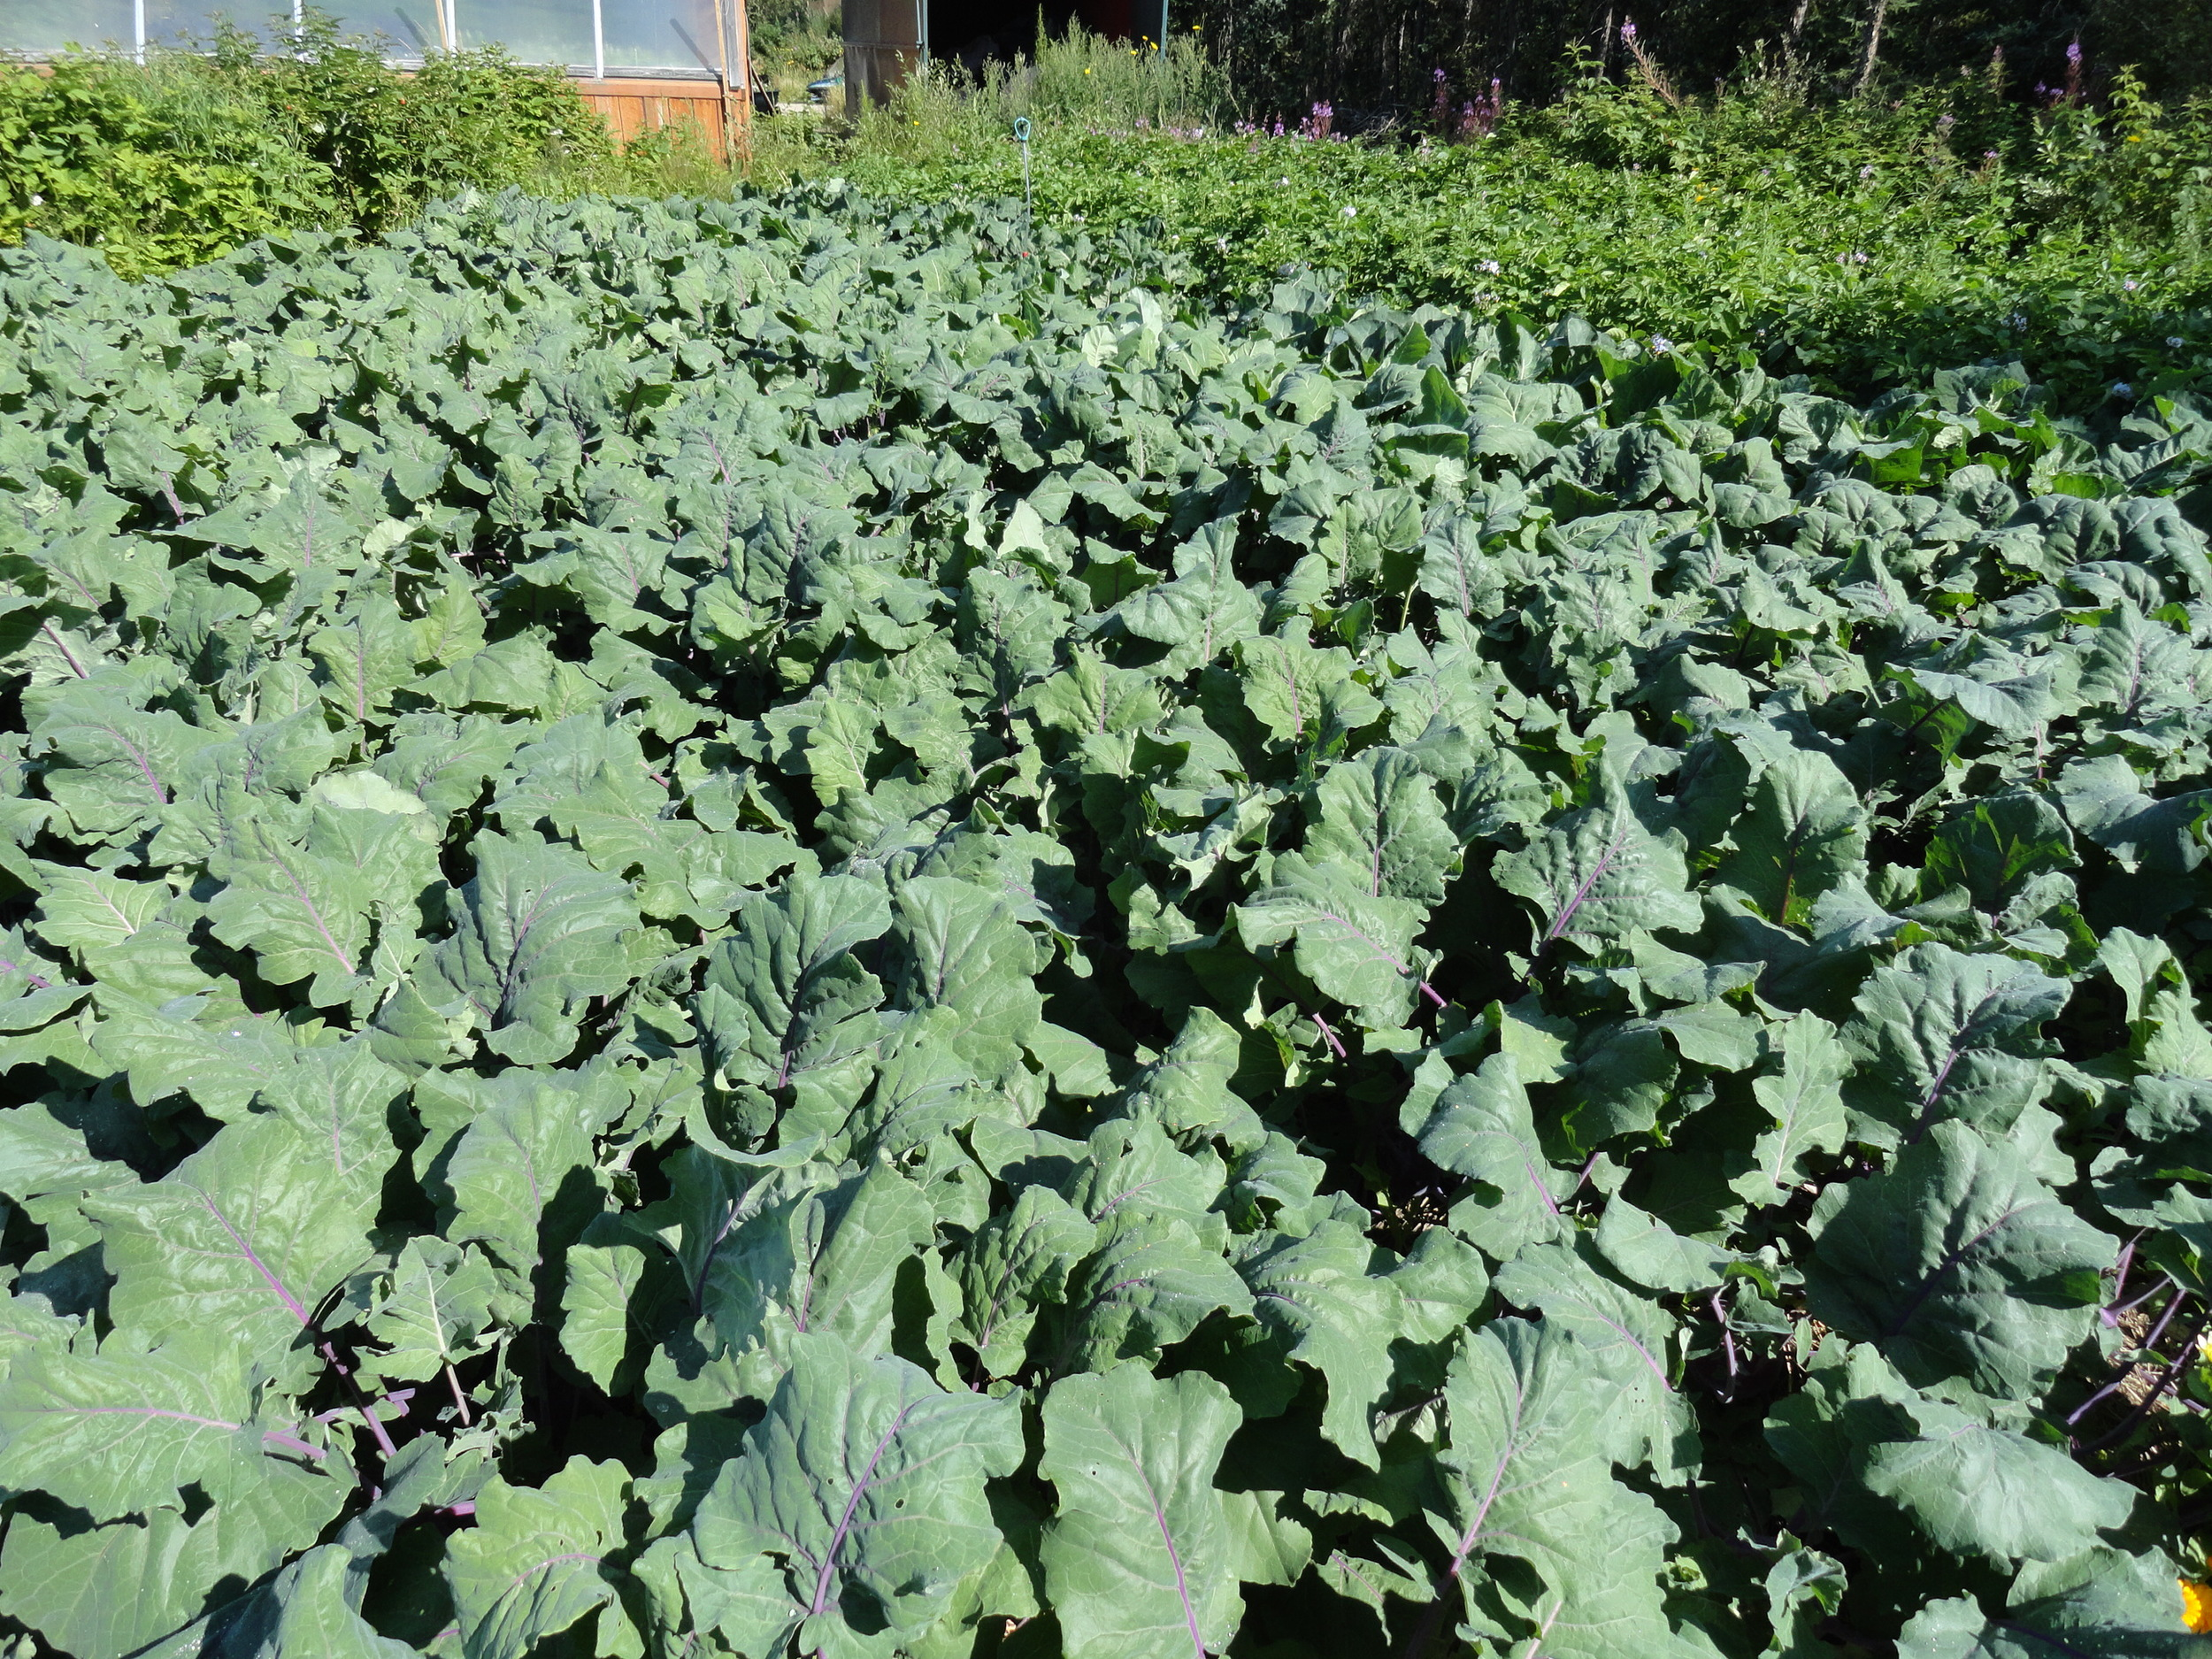 A field full of kohlrabi waiting to come to Yellowknife!